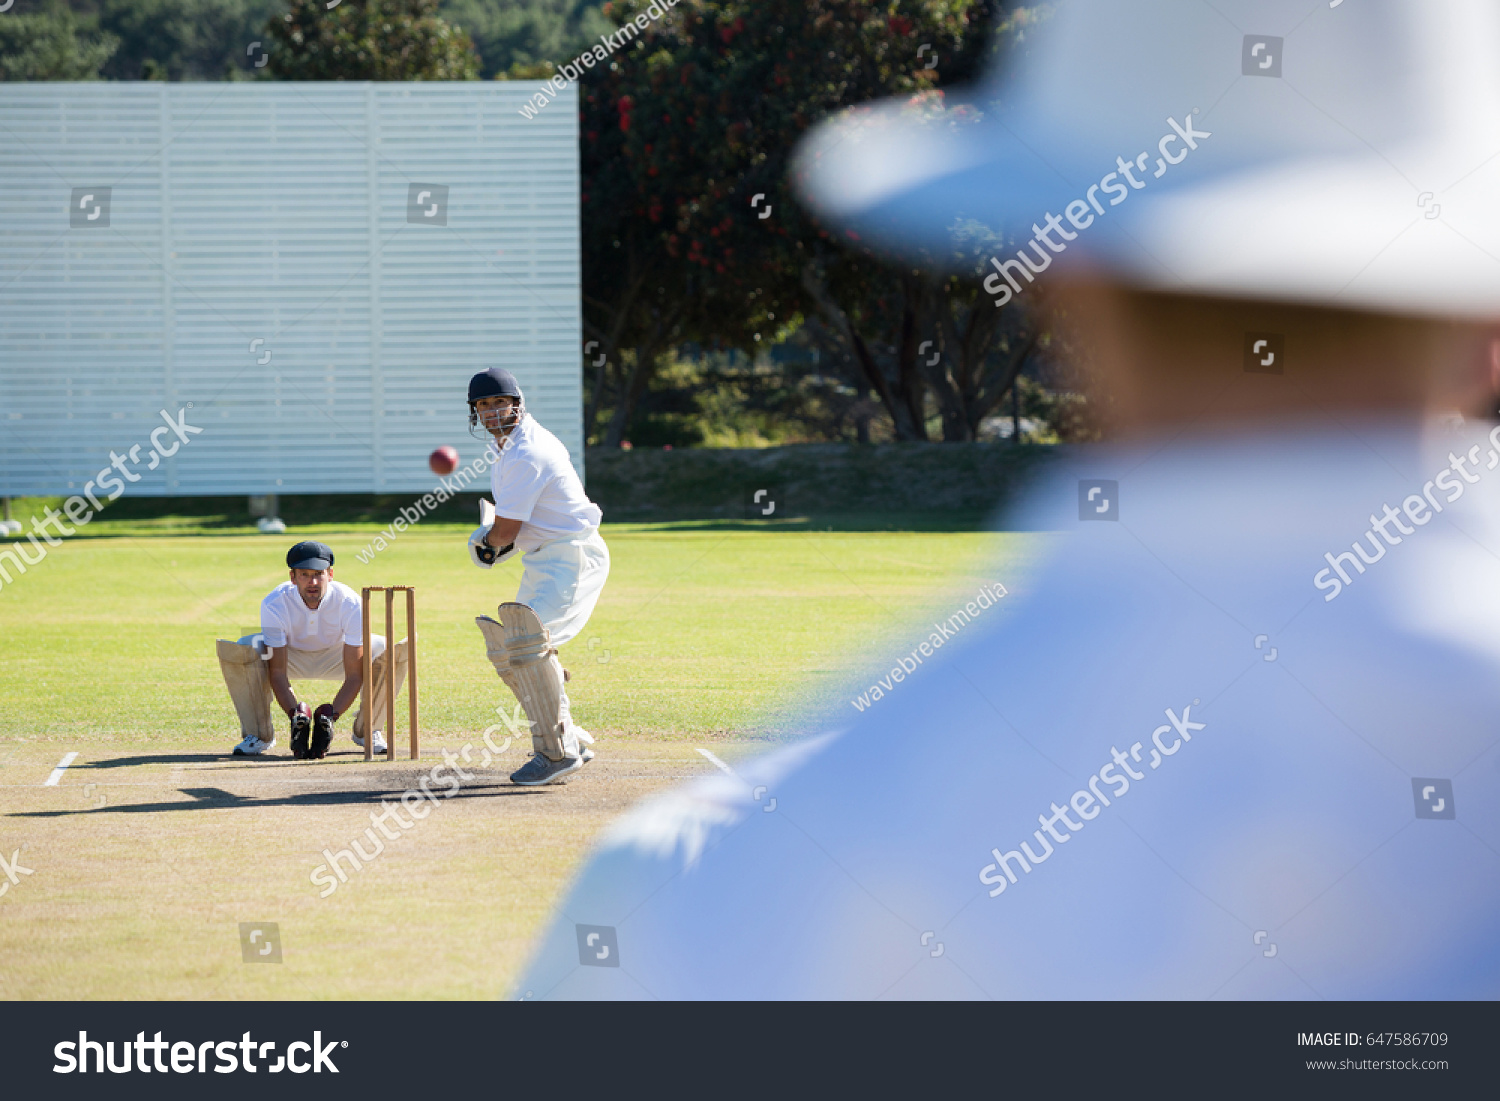 Powerpoint Template  Rear View Of Umpire Standing  Nlompnohu